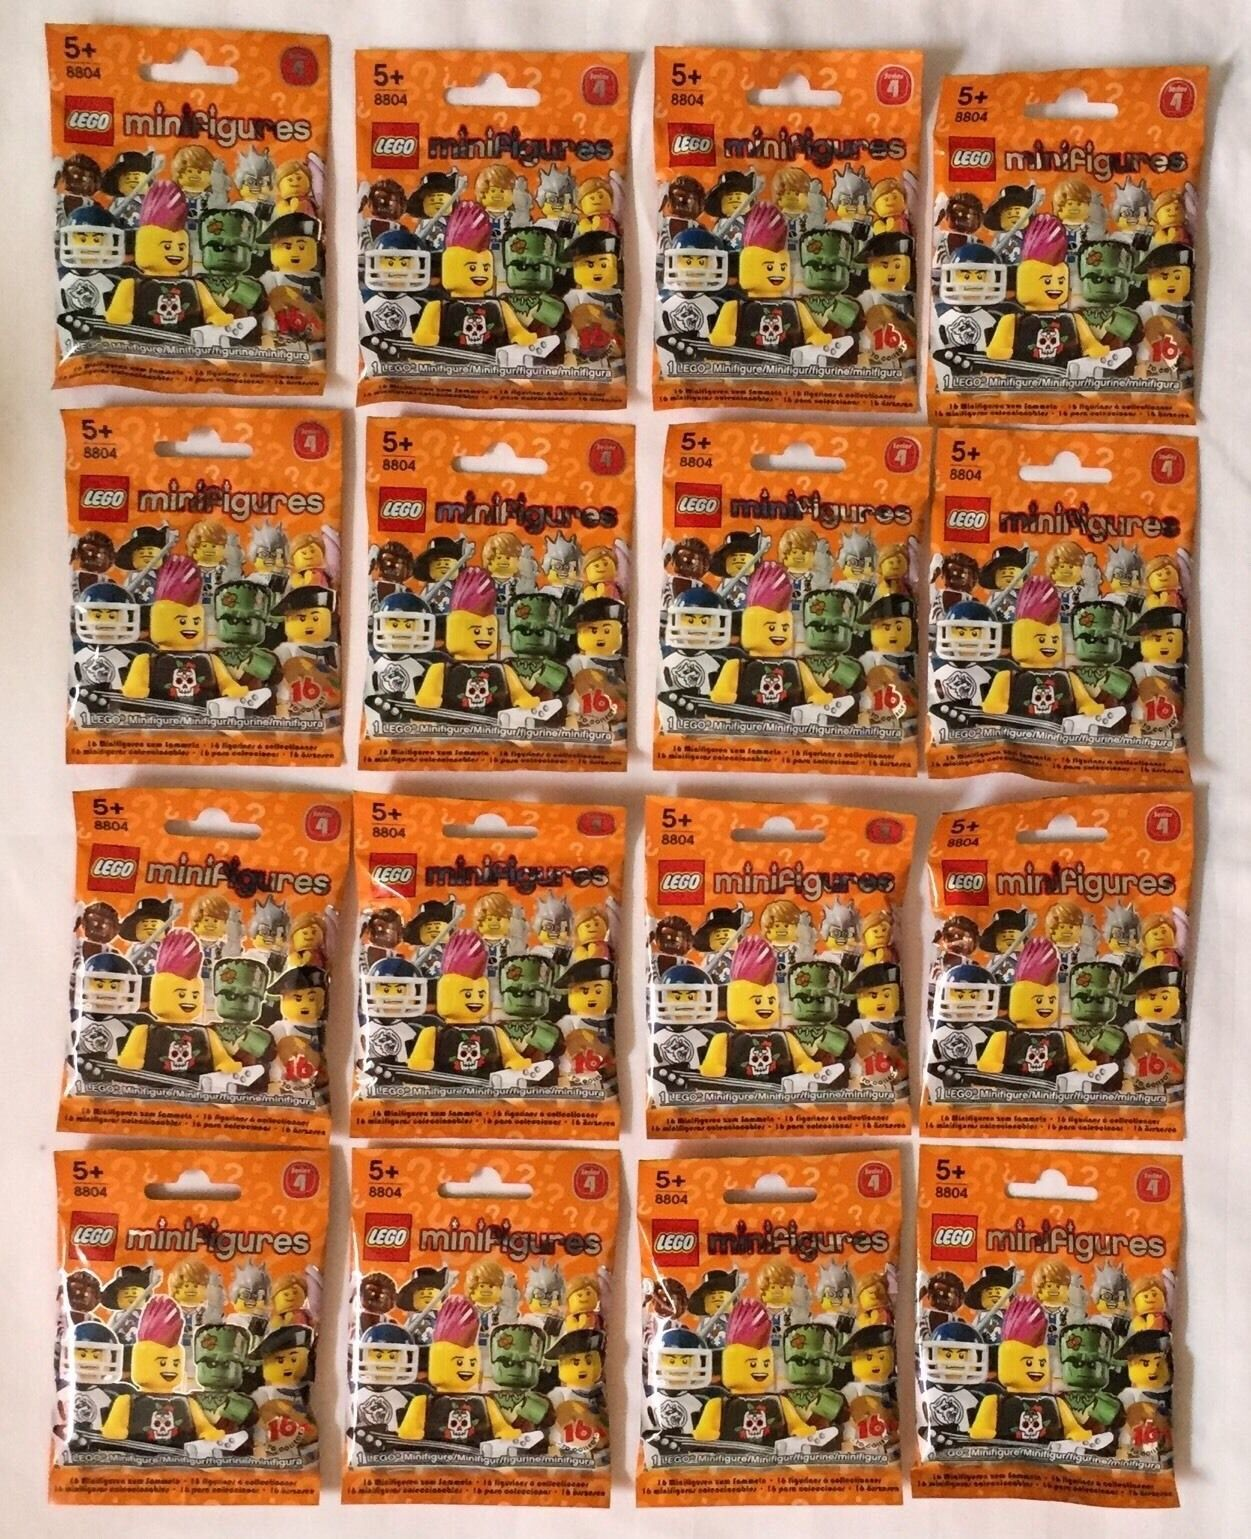 LEGO MINIFIGURES (8804) - Series 4 -COMPLETE SET of 16 Figures - New & Sealed